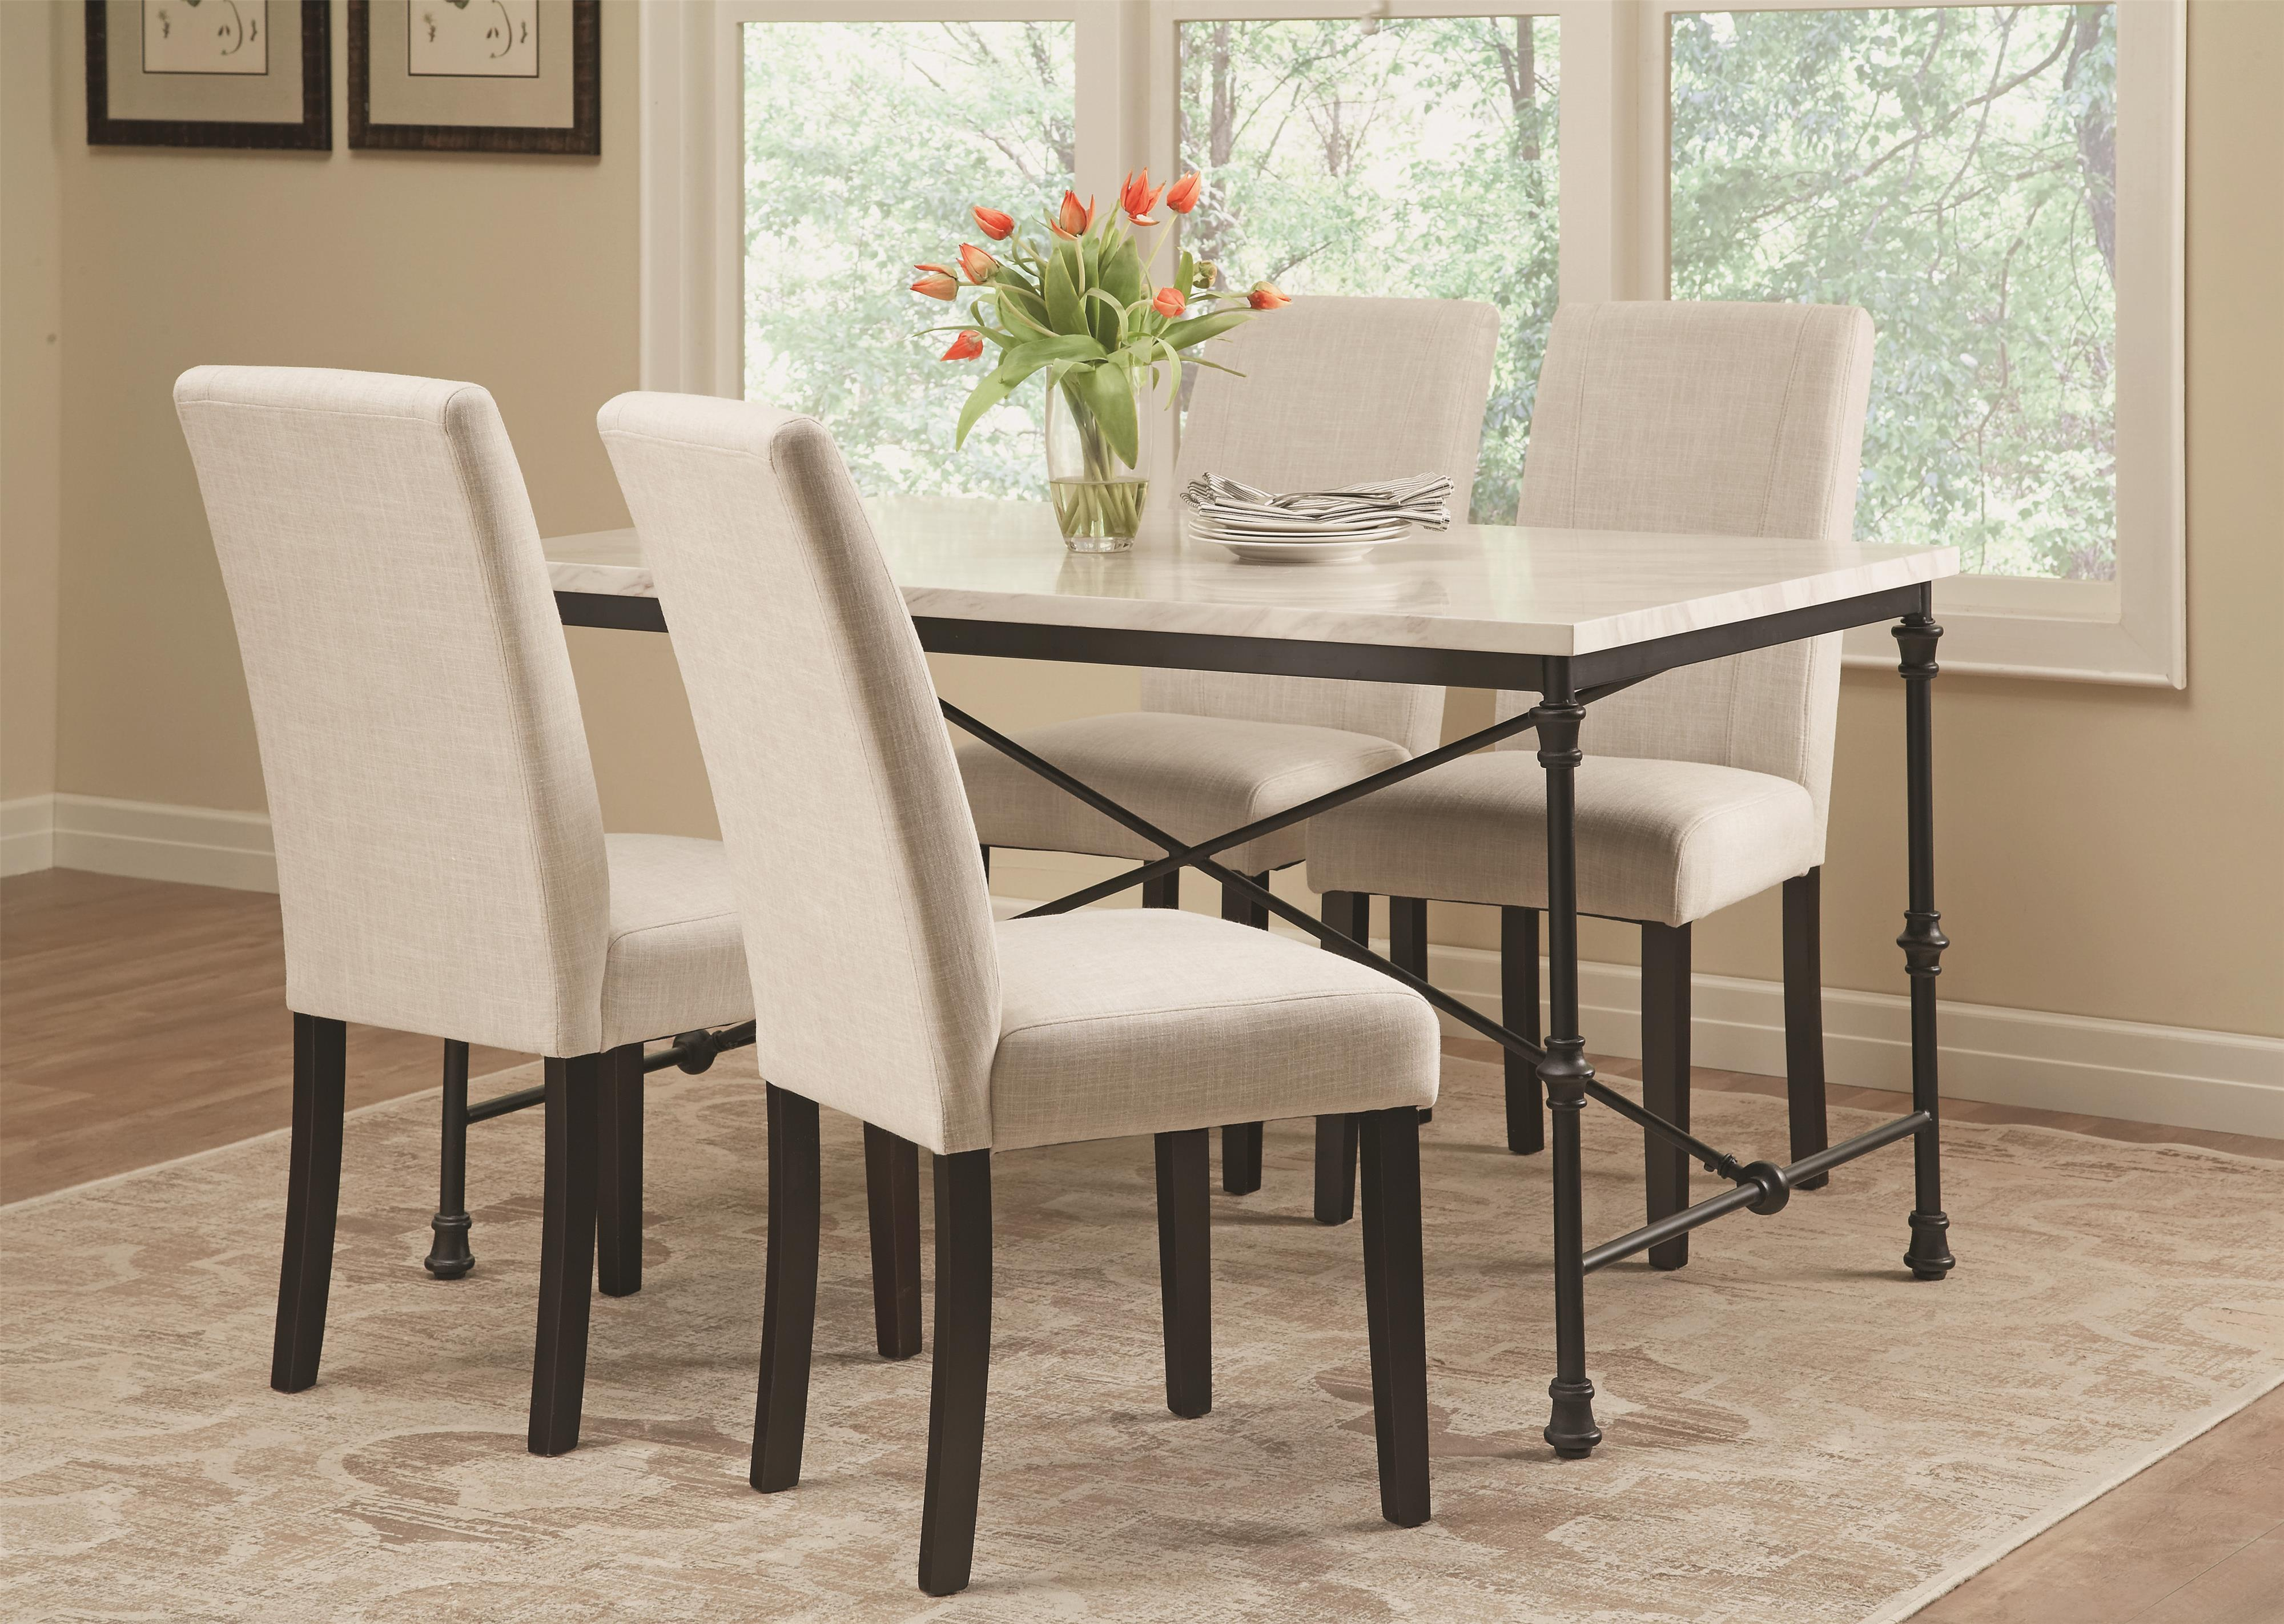 Coaster Nagel 5 Piece Industrial Table Set - Item Number: 106131+4x130061